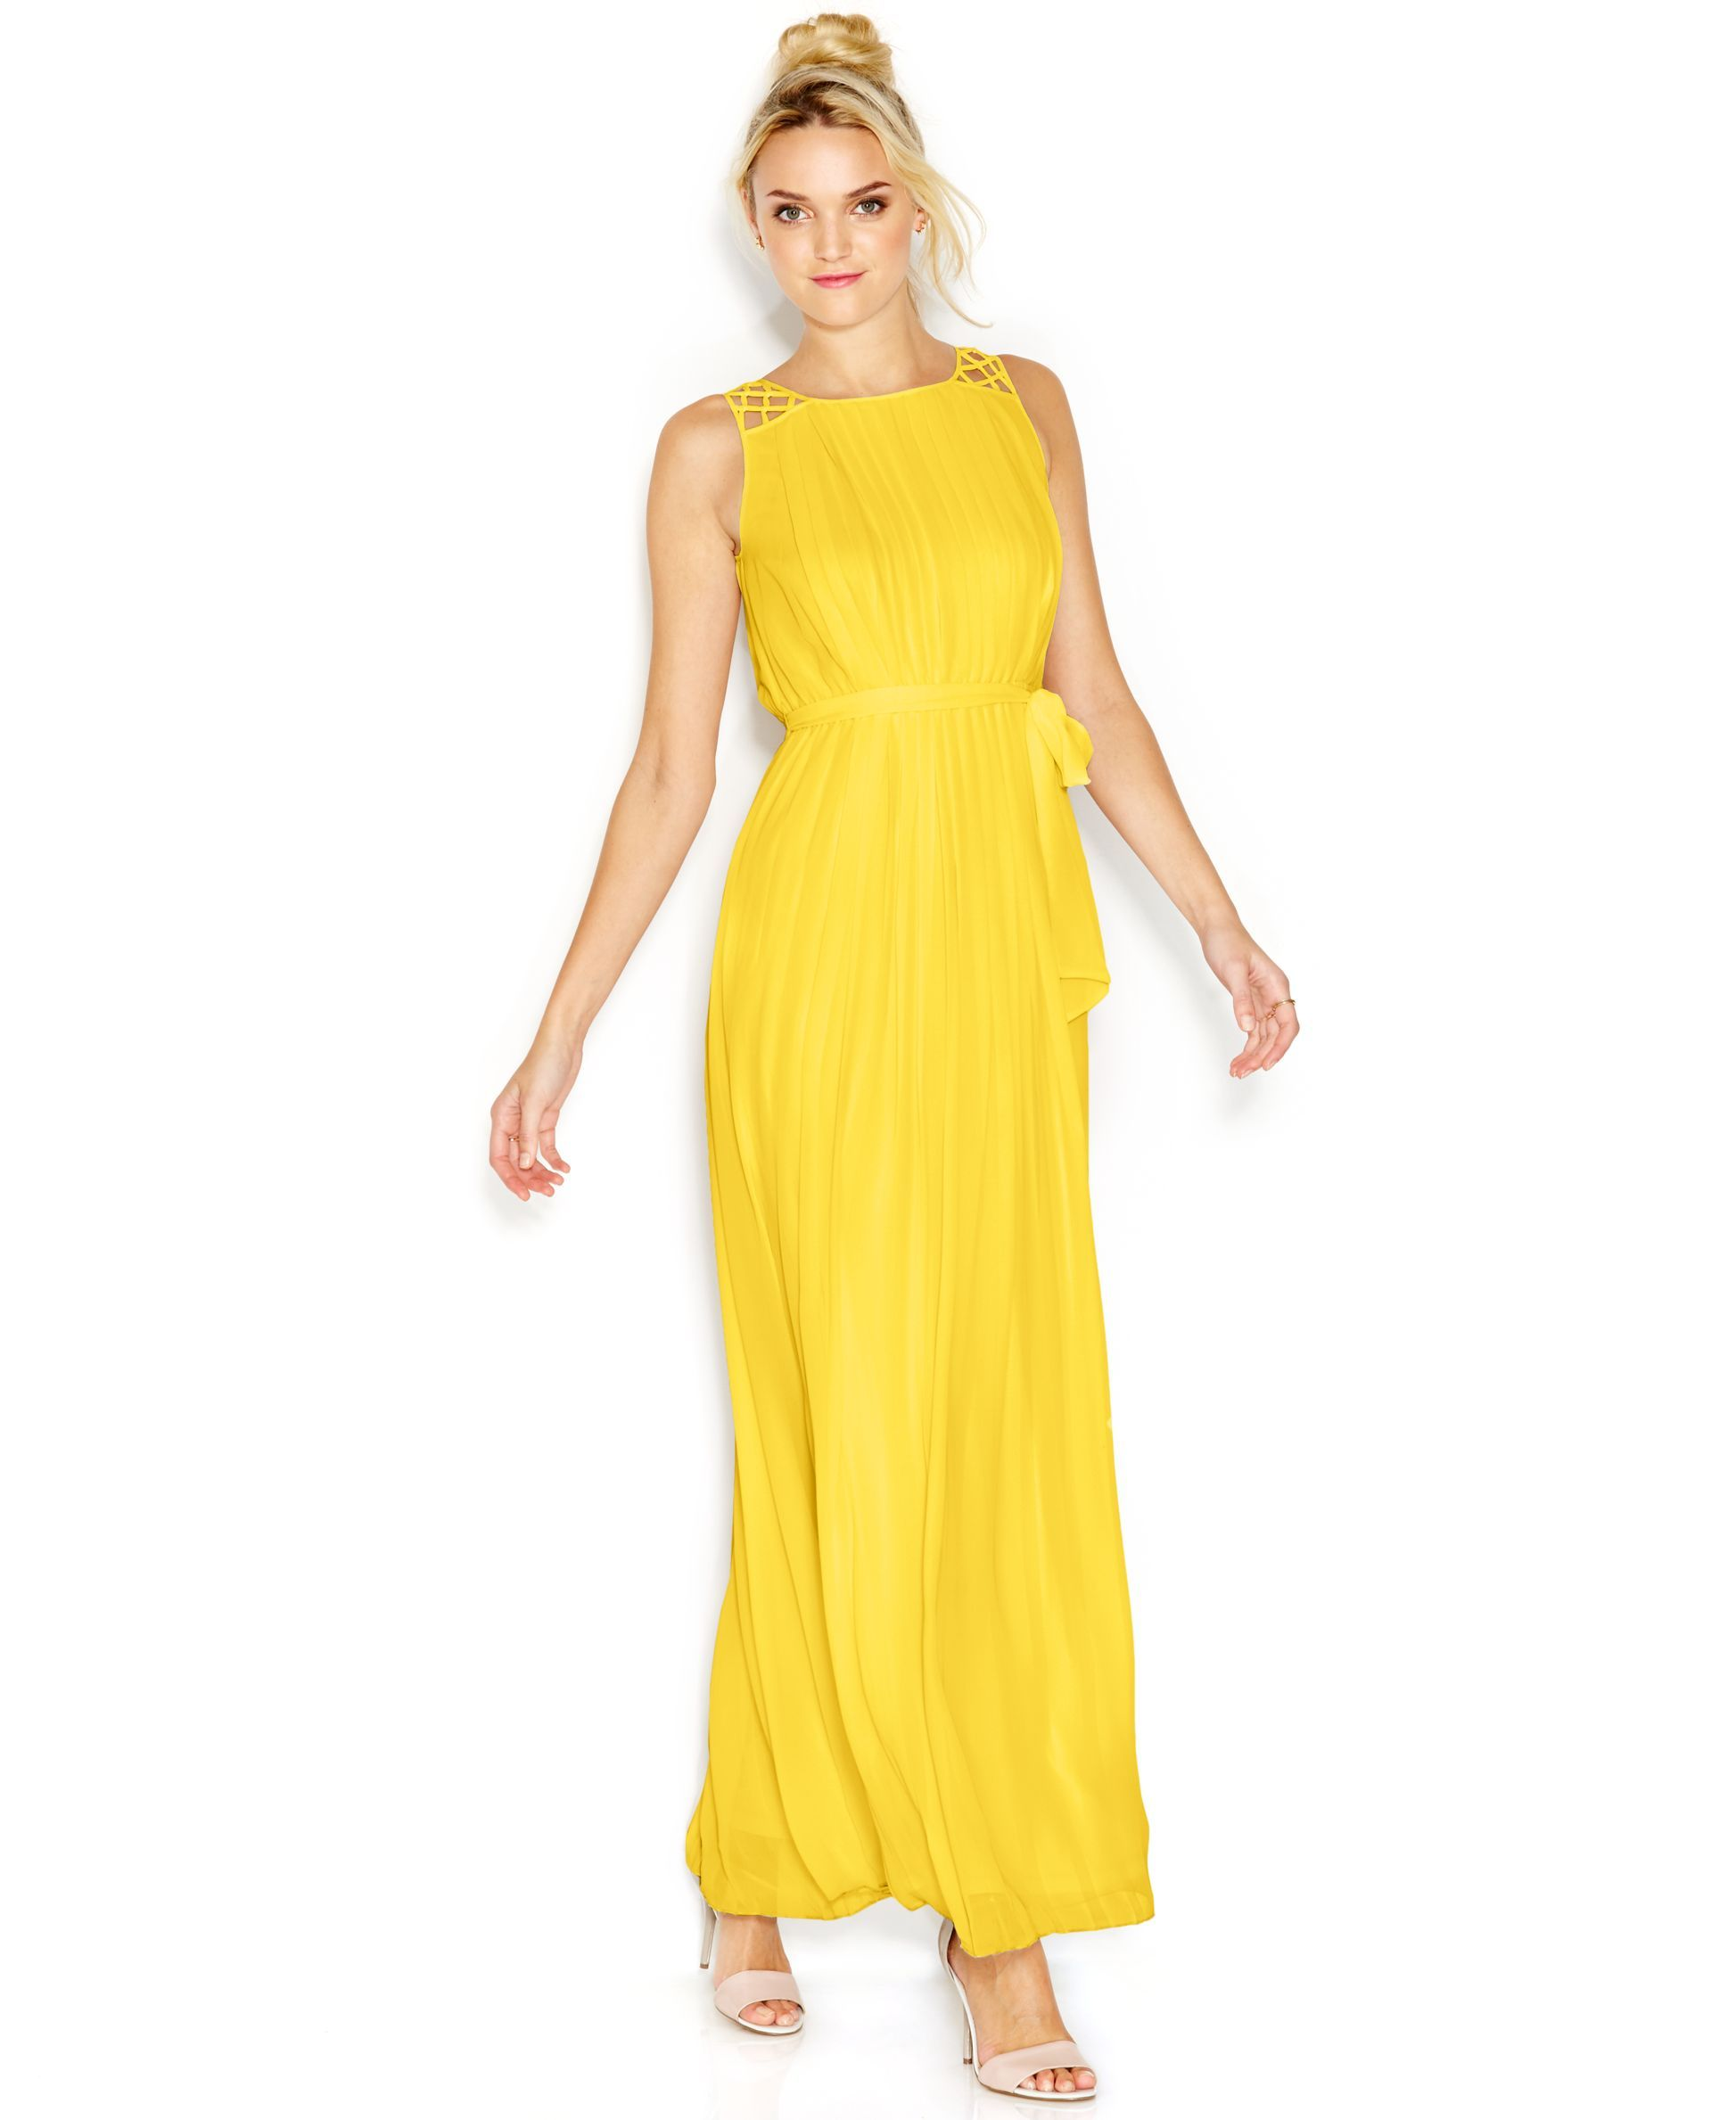 Yellow dress wedding guest  Jessica Simpson CrochetStrap Pleated Maxi Dress  Products